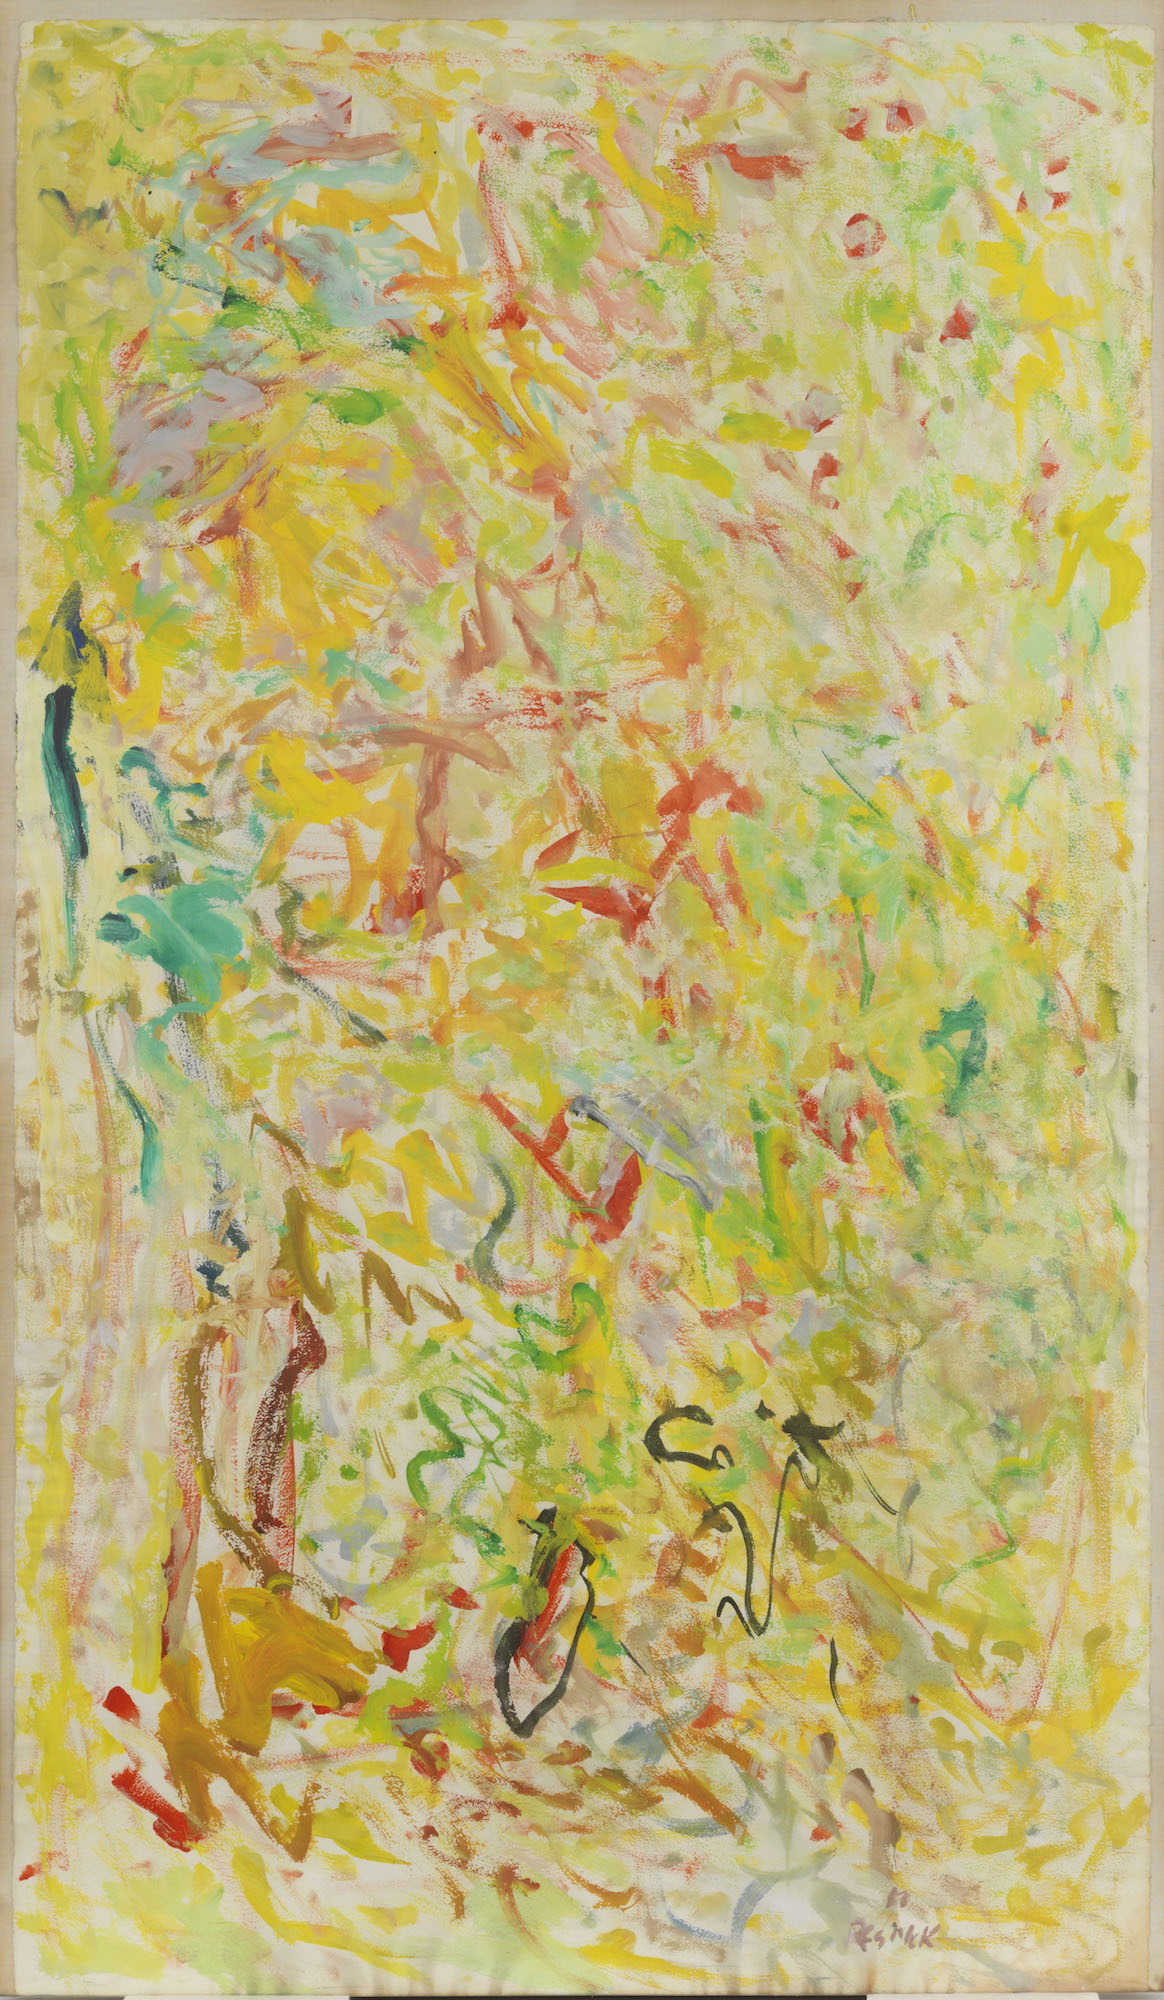 Milton Resnick  Untitled , 1960 Oil on paper 53 x 31 inches